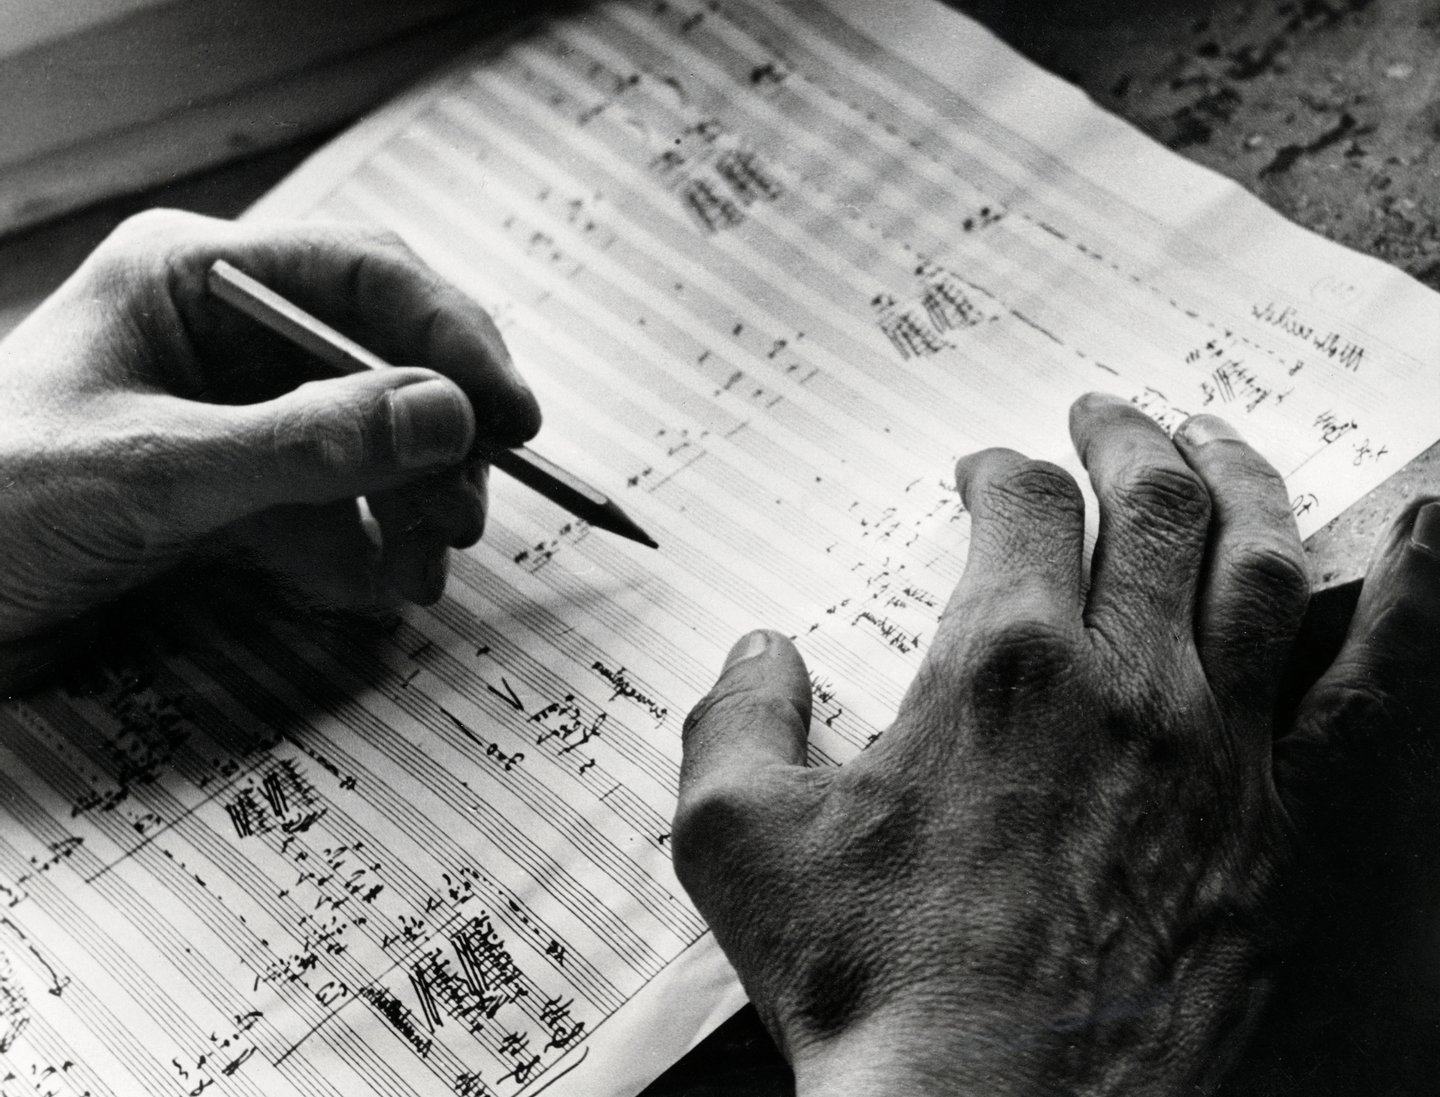 The German composer Carl Orff at work on a score